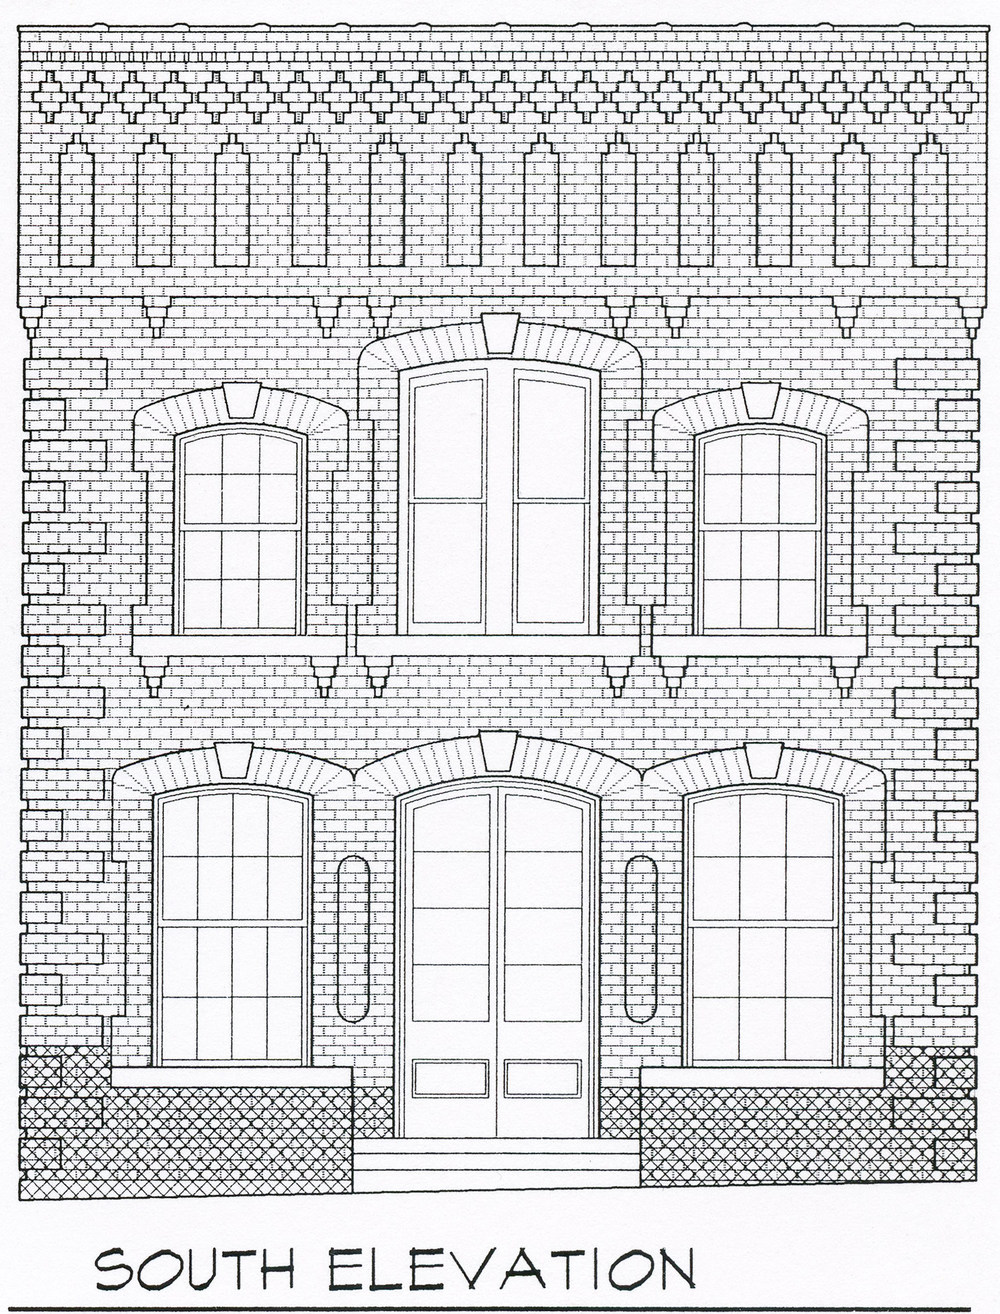 South Elevation, Summerfield Town Hall Plans